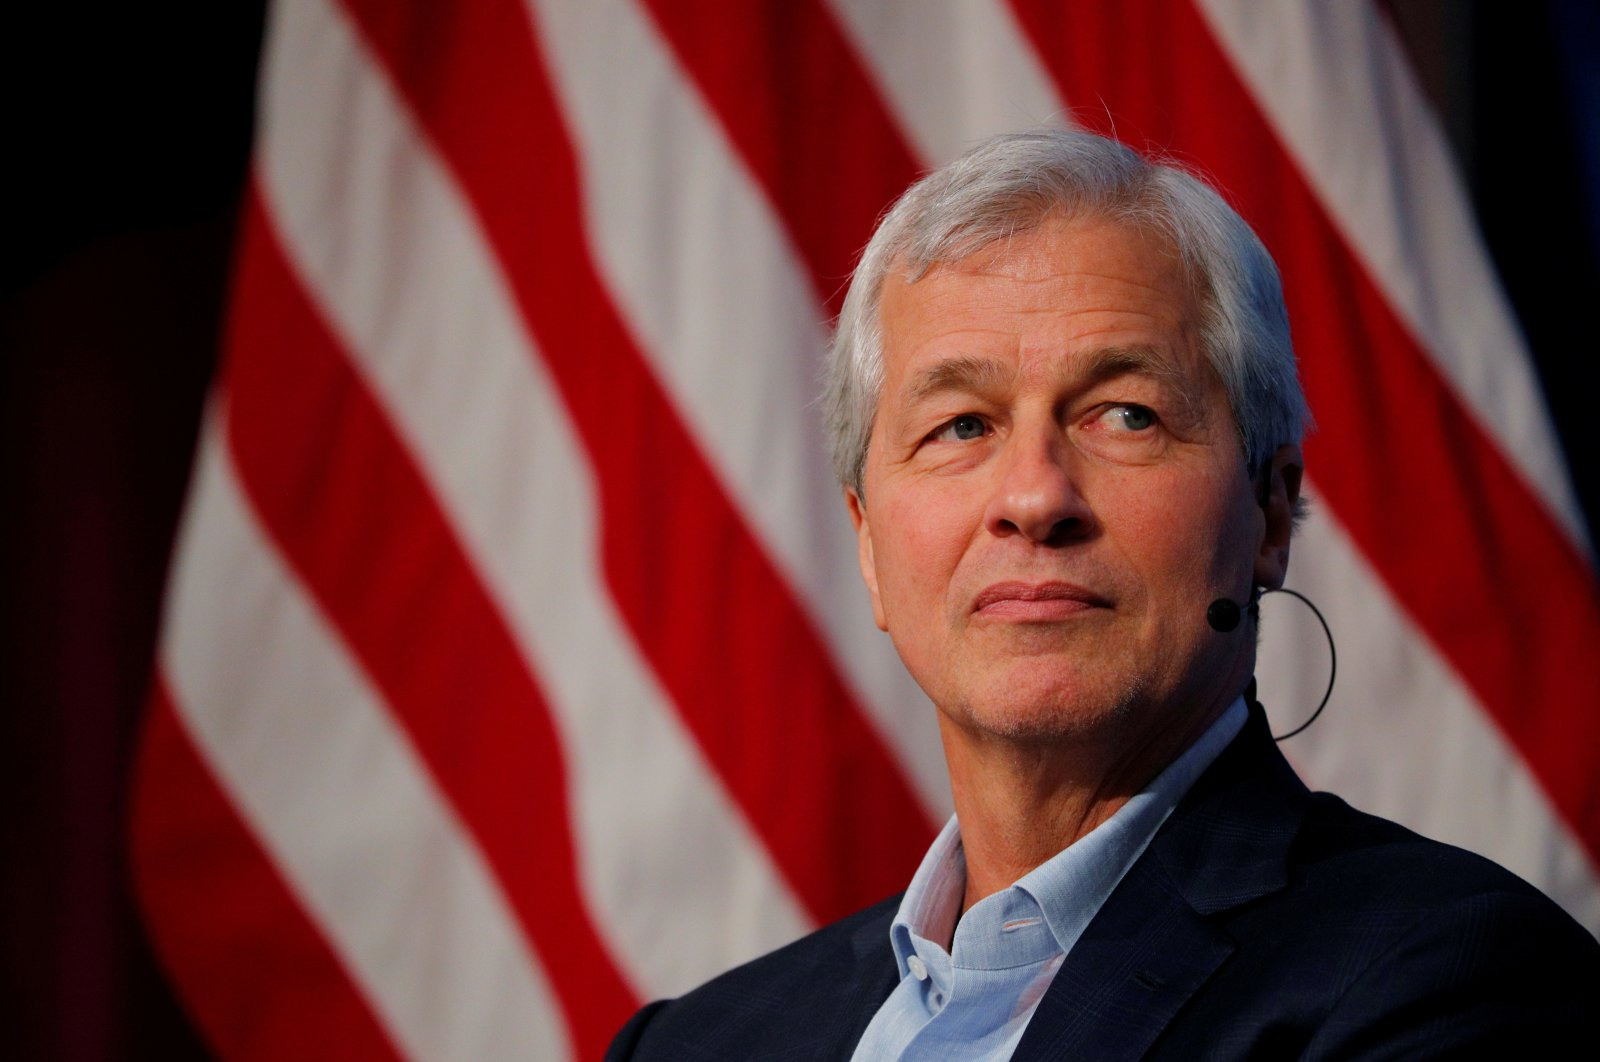 Jamie Dimon, CEO of J.P. Morgan Chase, takes part in a panel discussion about investing in Detroit during a panel discussion at the Kennedy School of Government at Harvard University in Cambridge, Massachusetts, U.S., April 11, 2018. (Reuters File Photo)